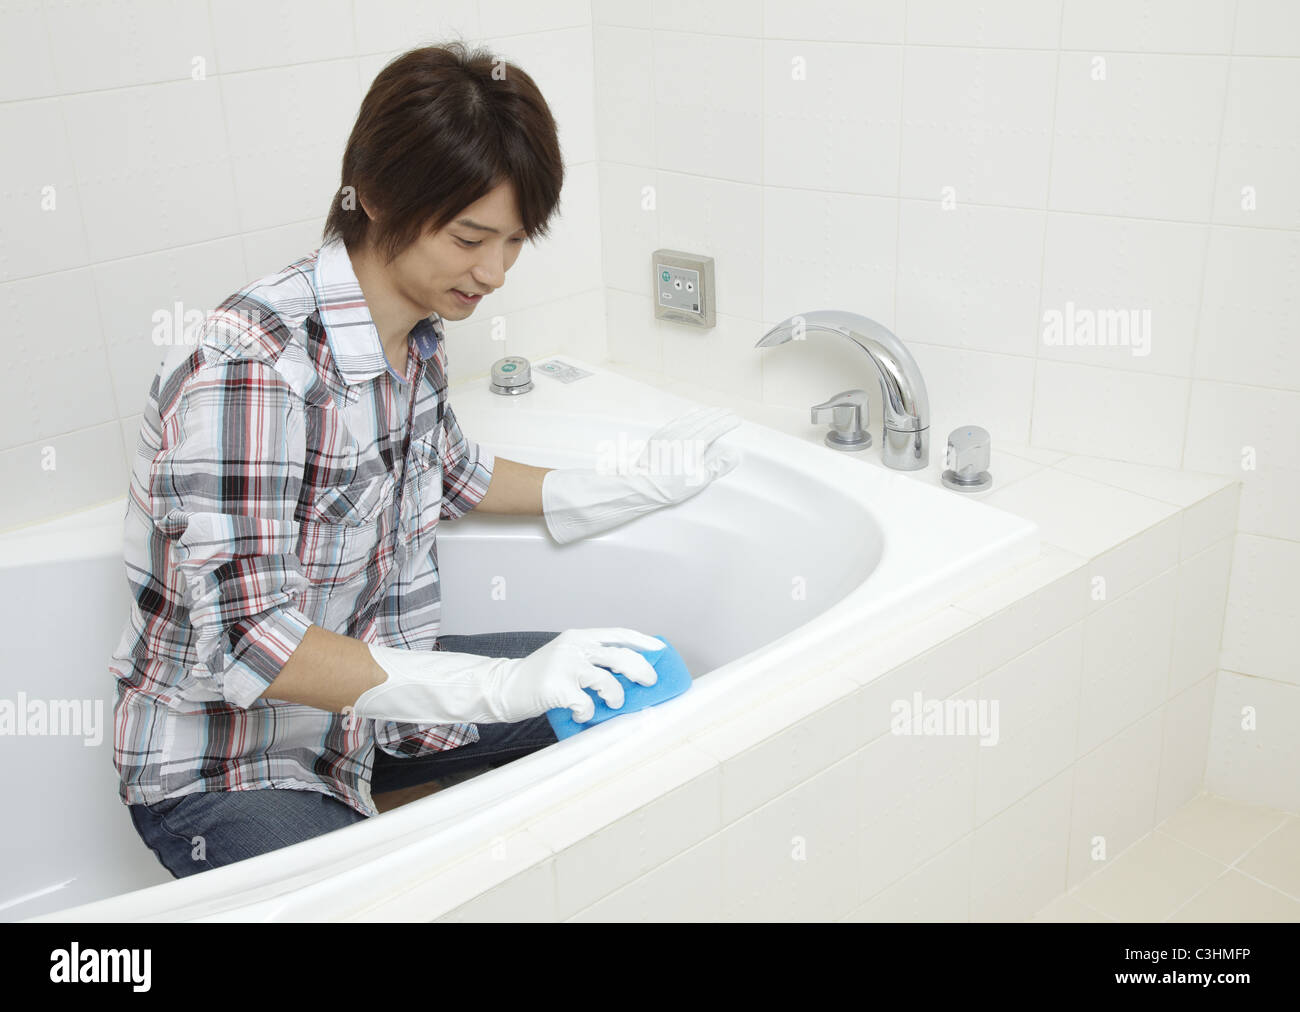 Man Cleaning Bathroom Stock Photo Alamy - Bathroom cleaner person